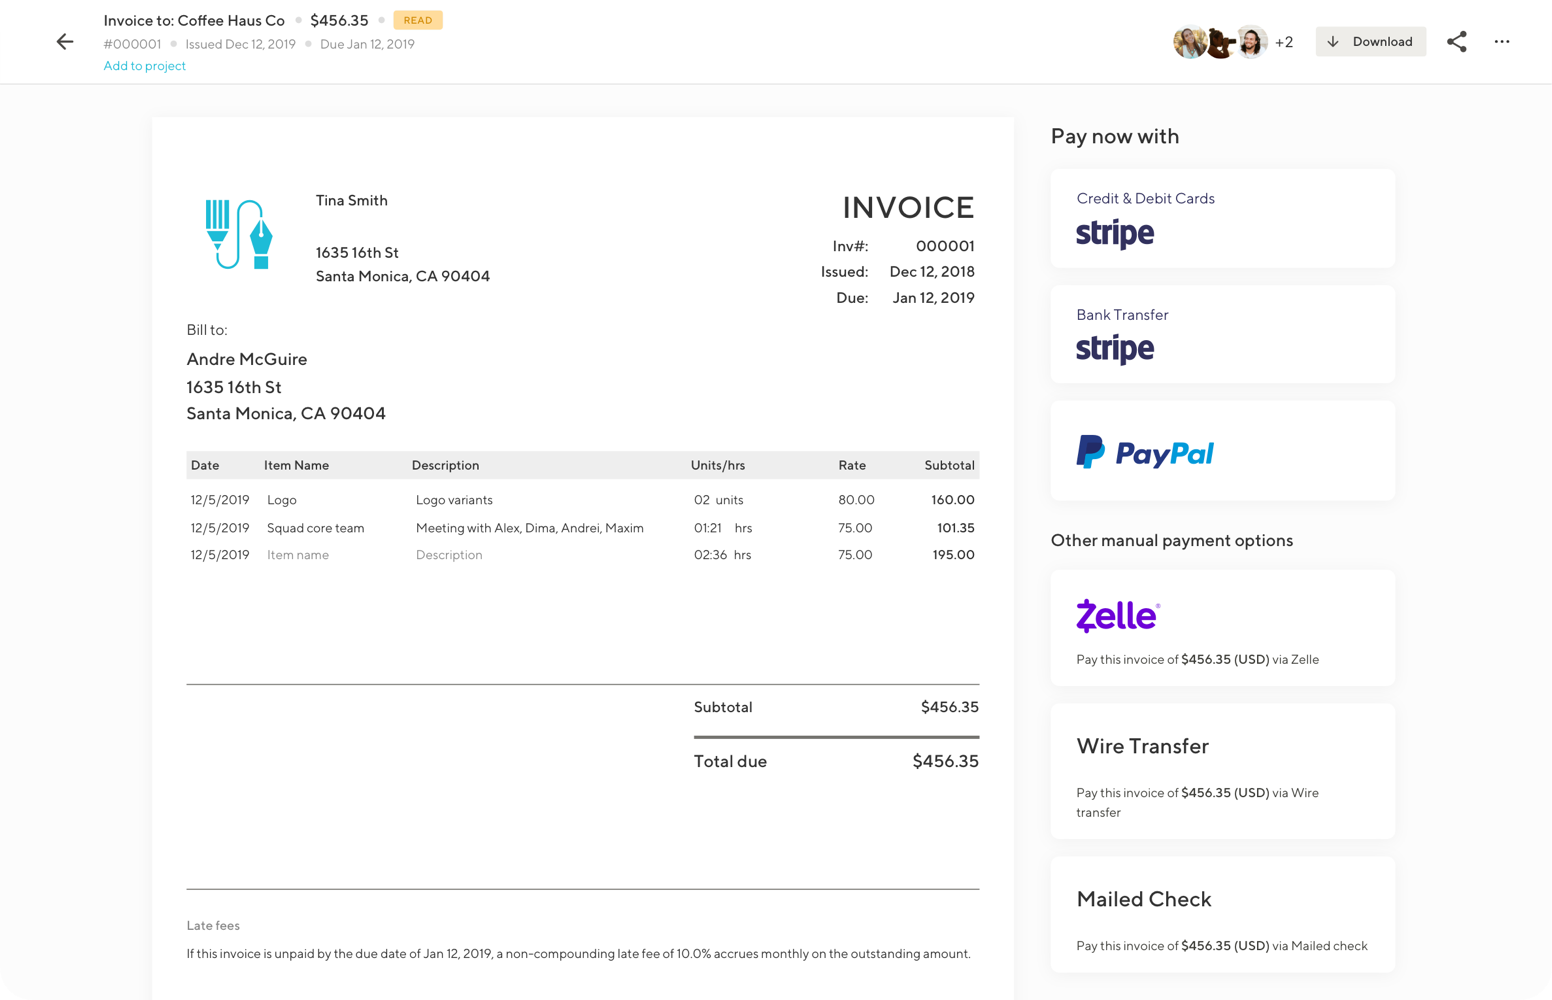 Screenshot of Invoices tool